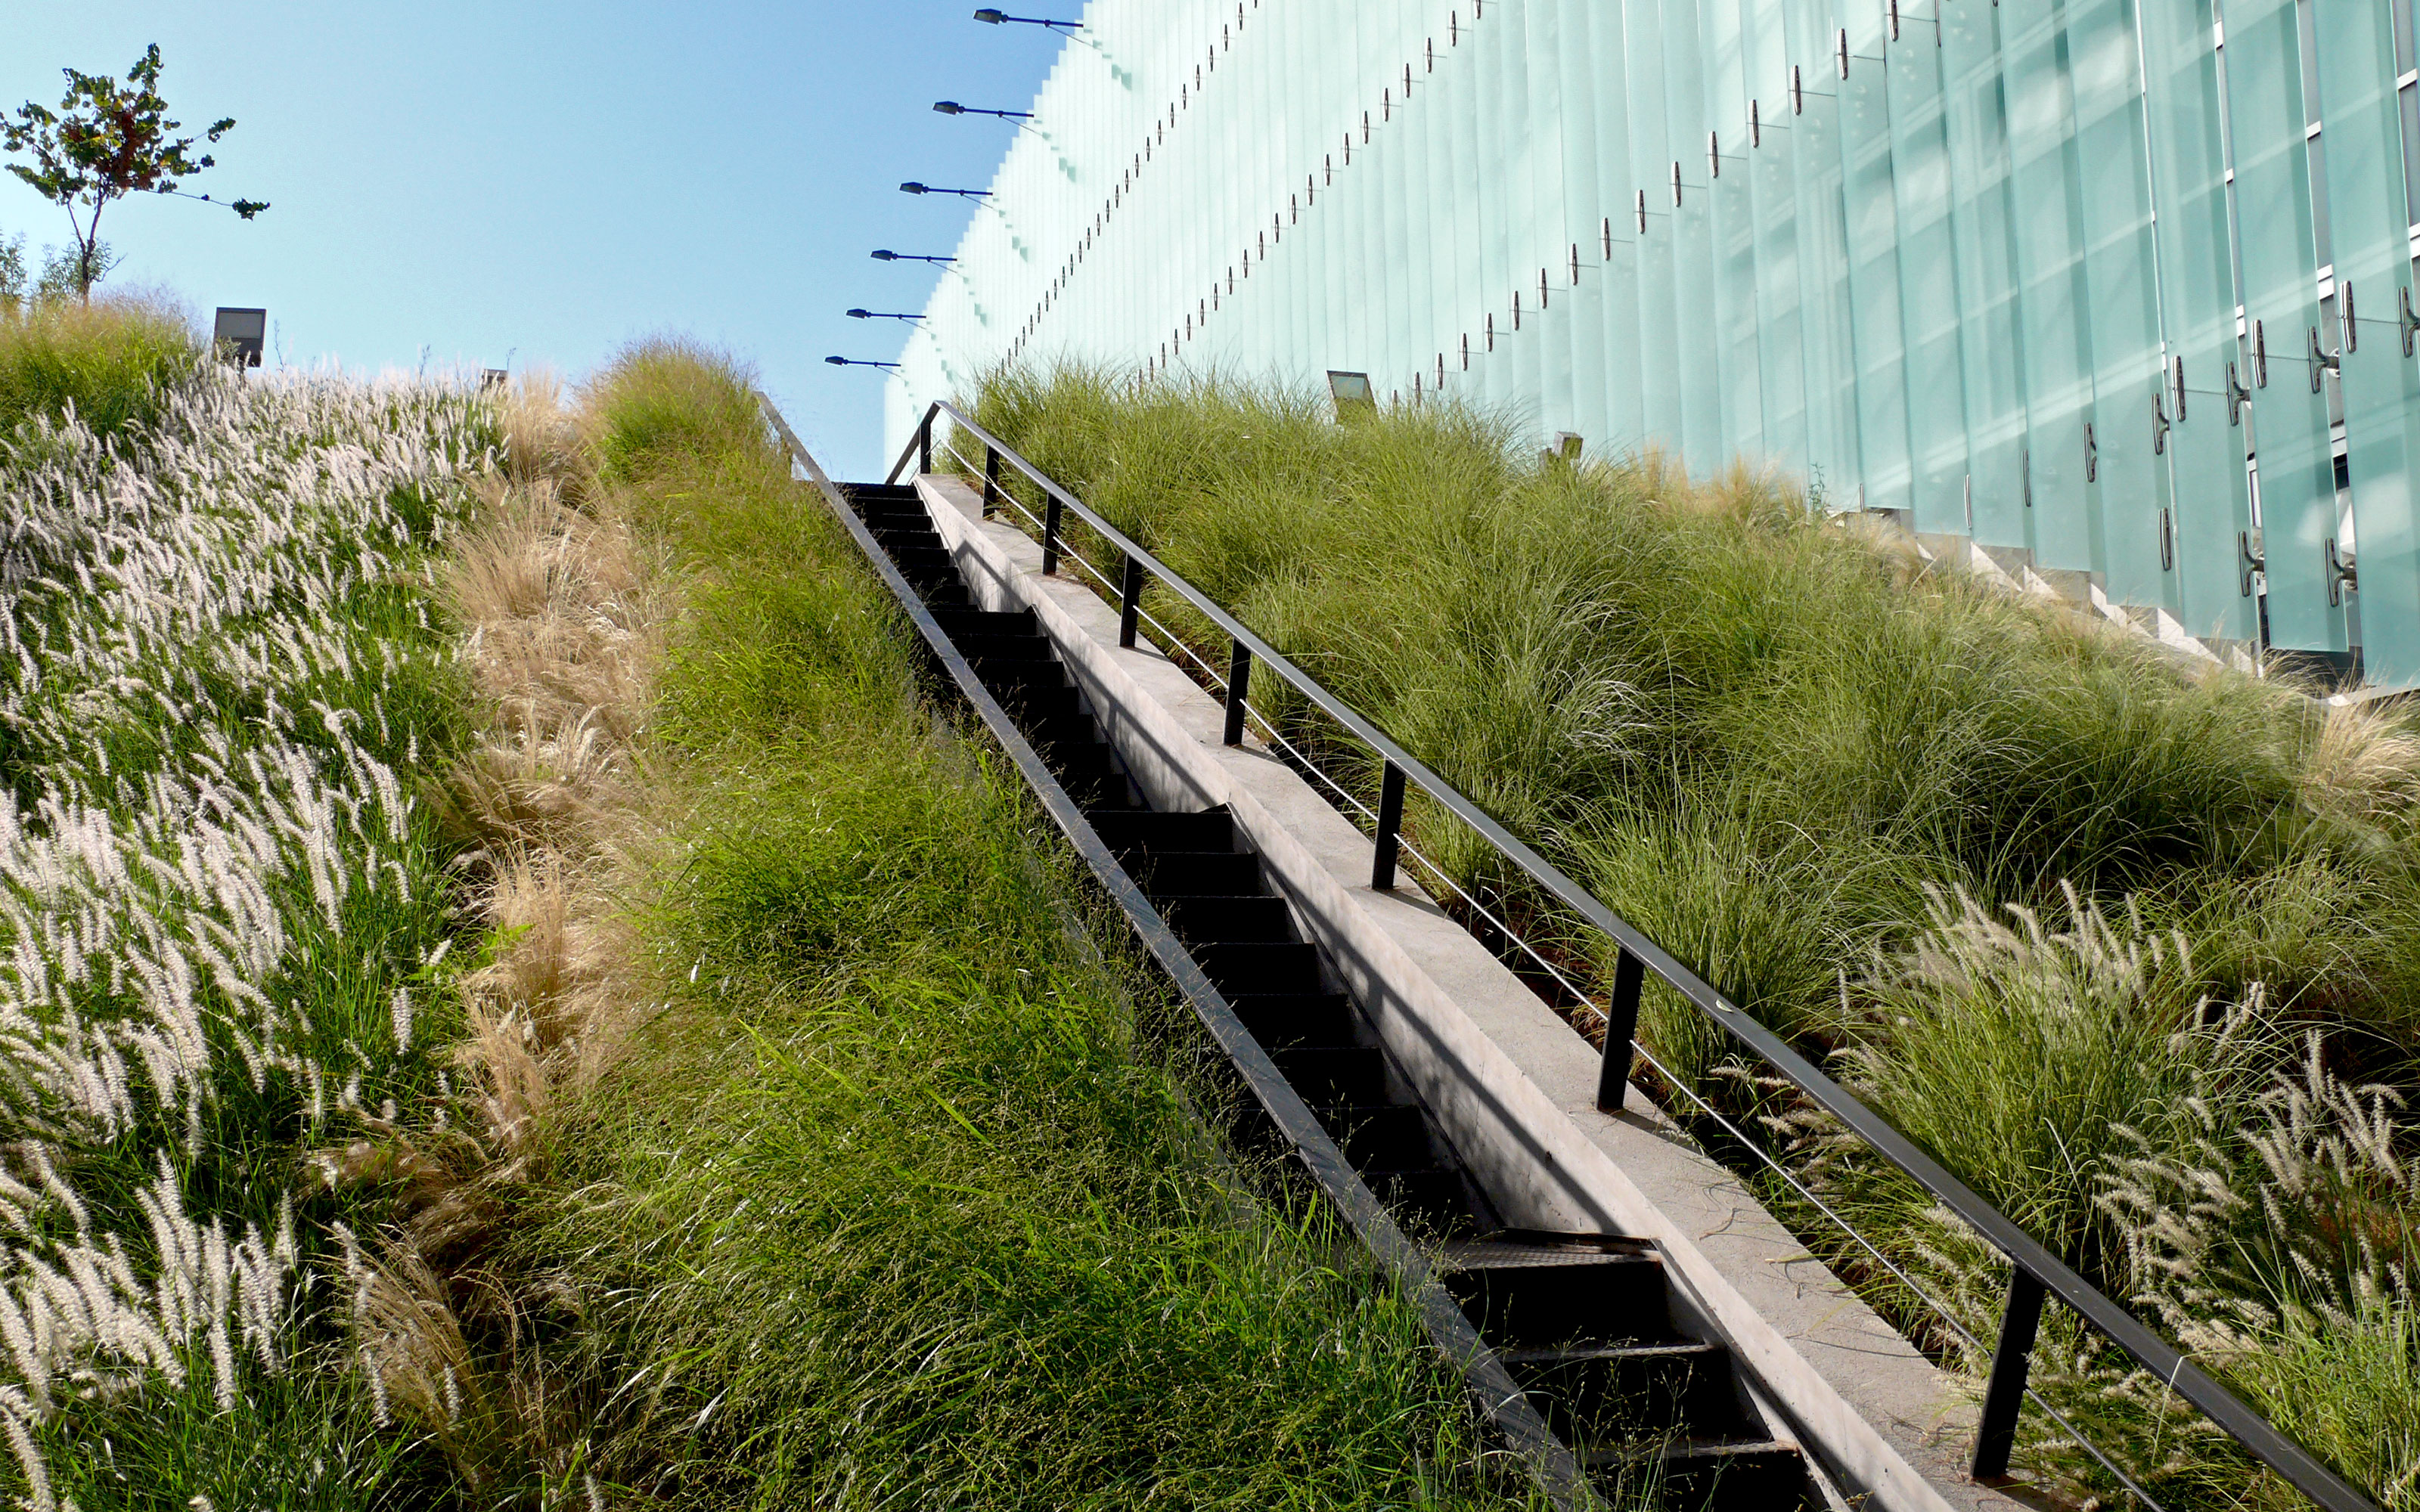 Pitched green roof with ornamental grasses and stairs up to the rooftop